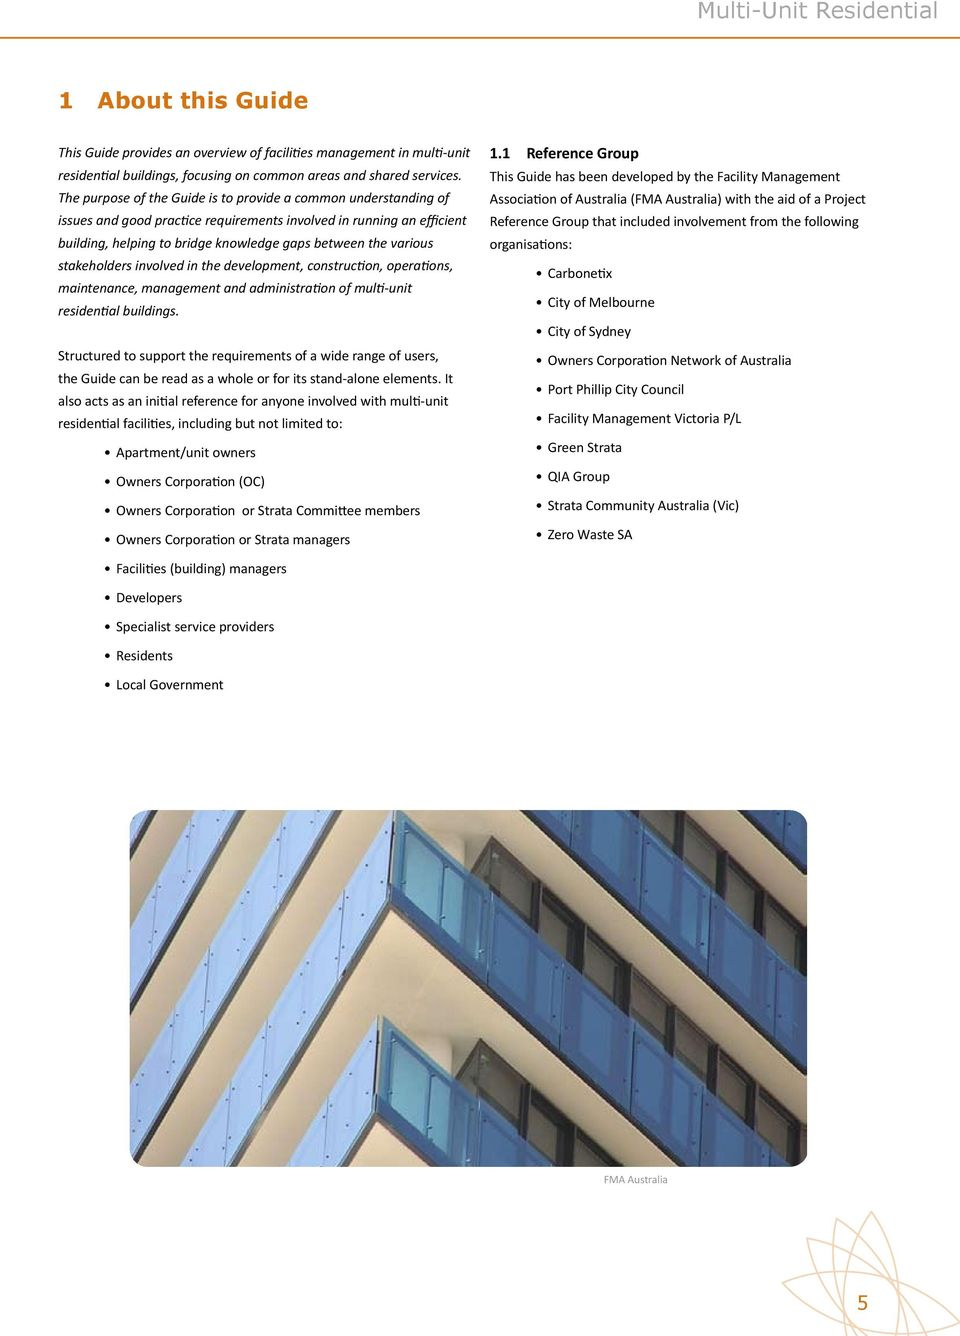 stakeholders involved in the development, construction, operations, maintenance, management and administration of multi-unit residential buildings.